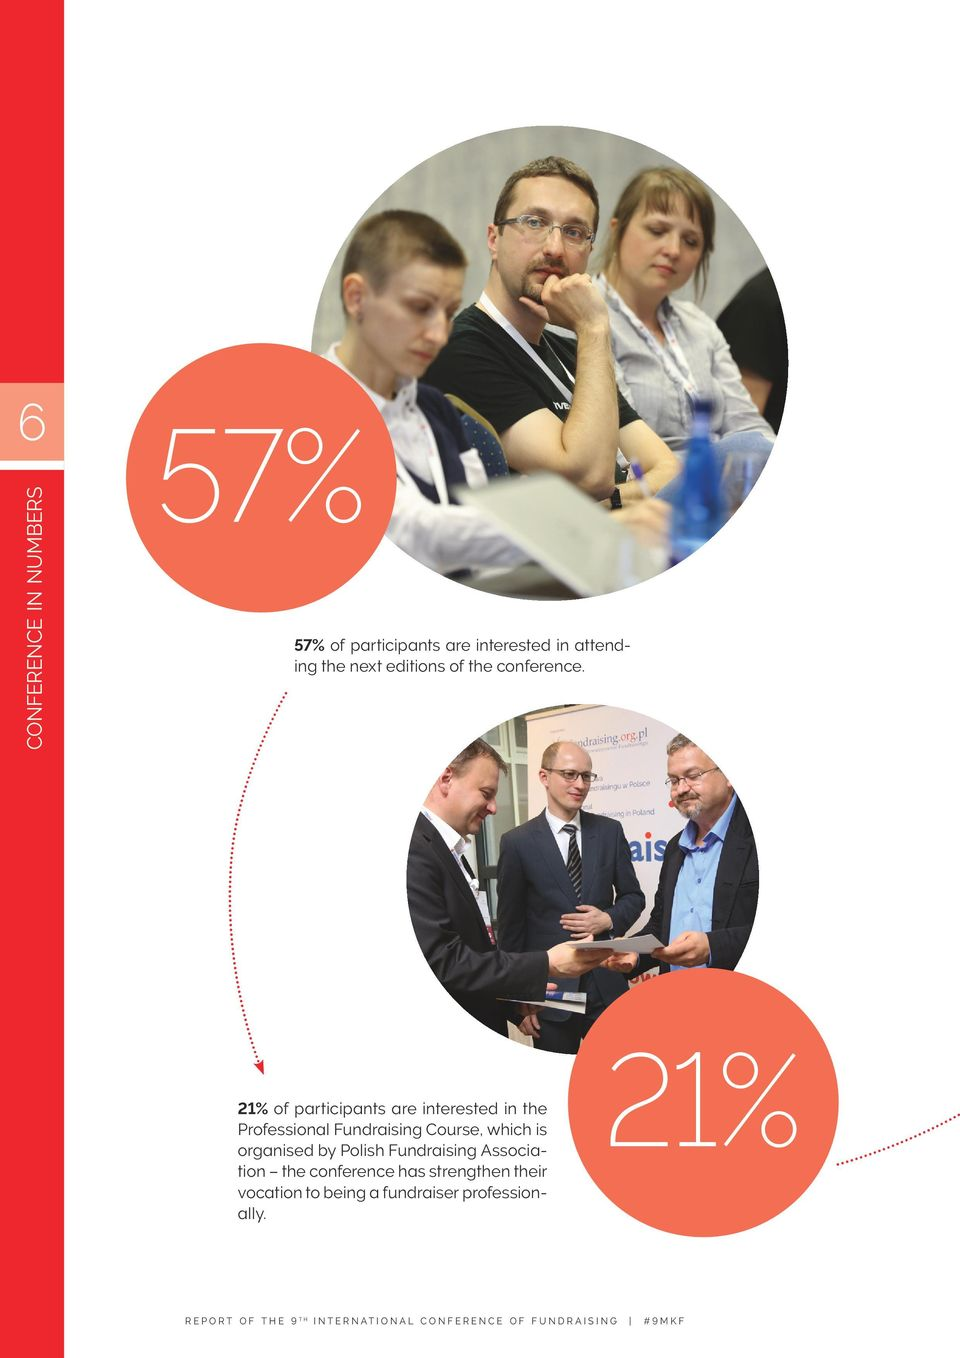 21% of participants are interested in the Professional Fundraising Course,